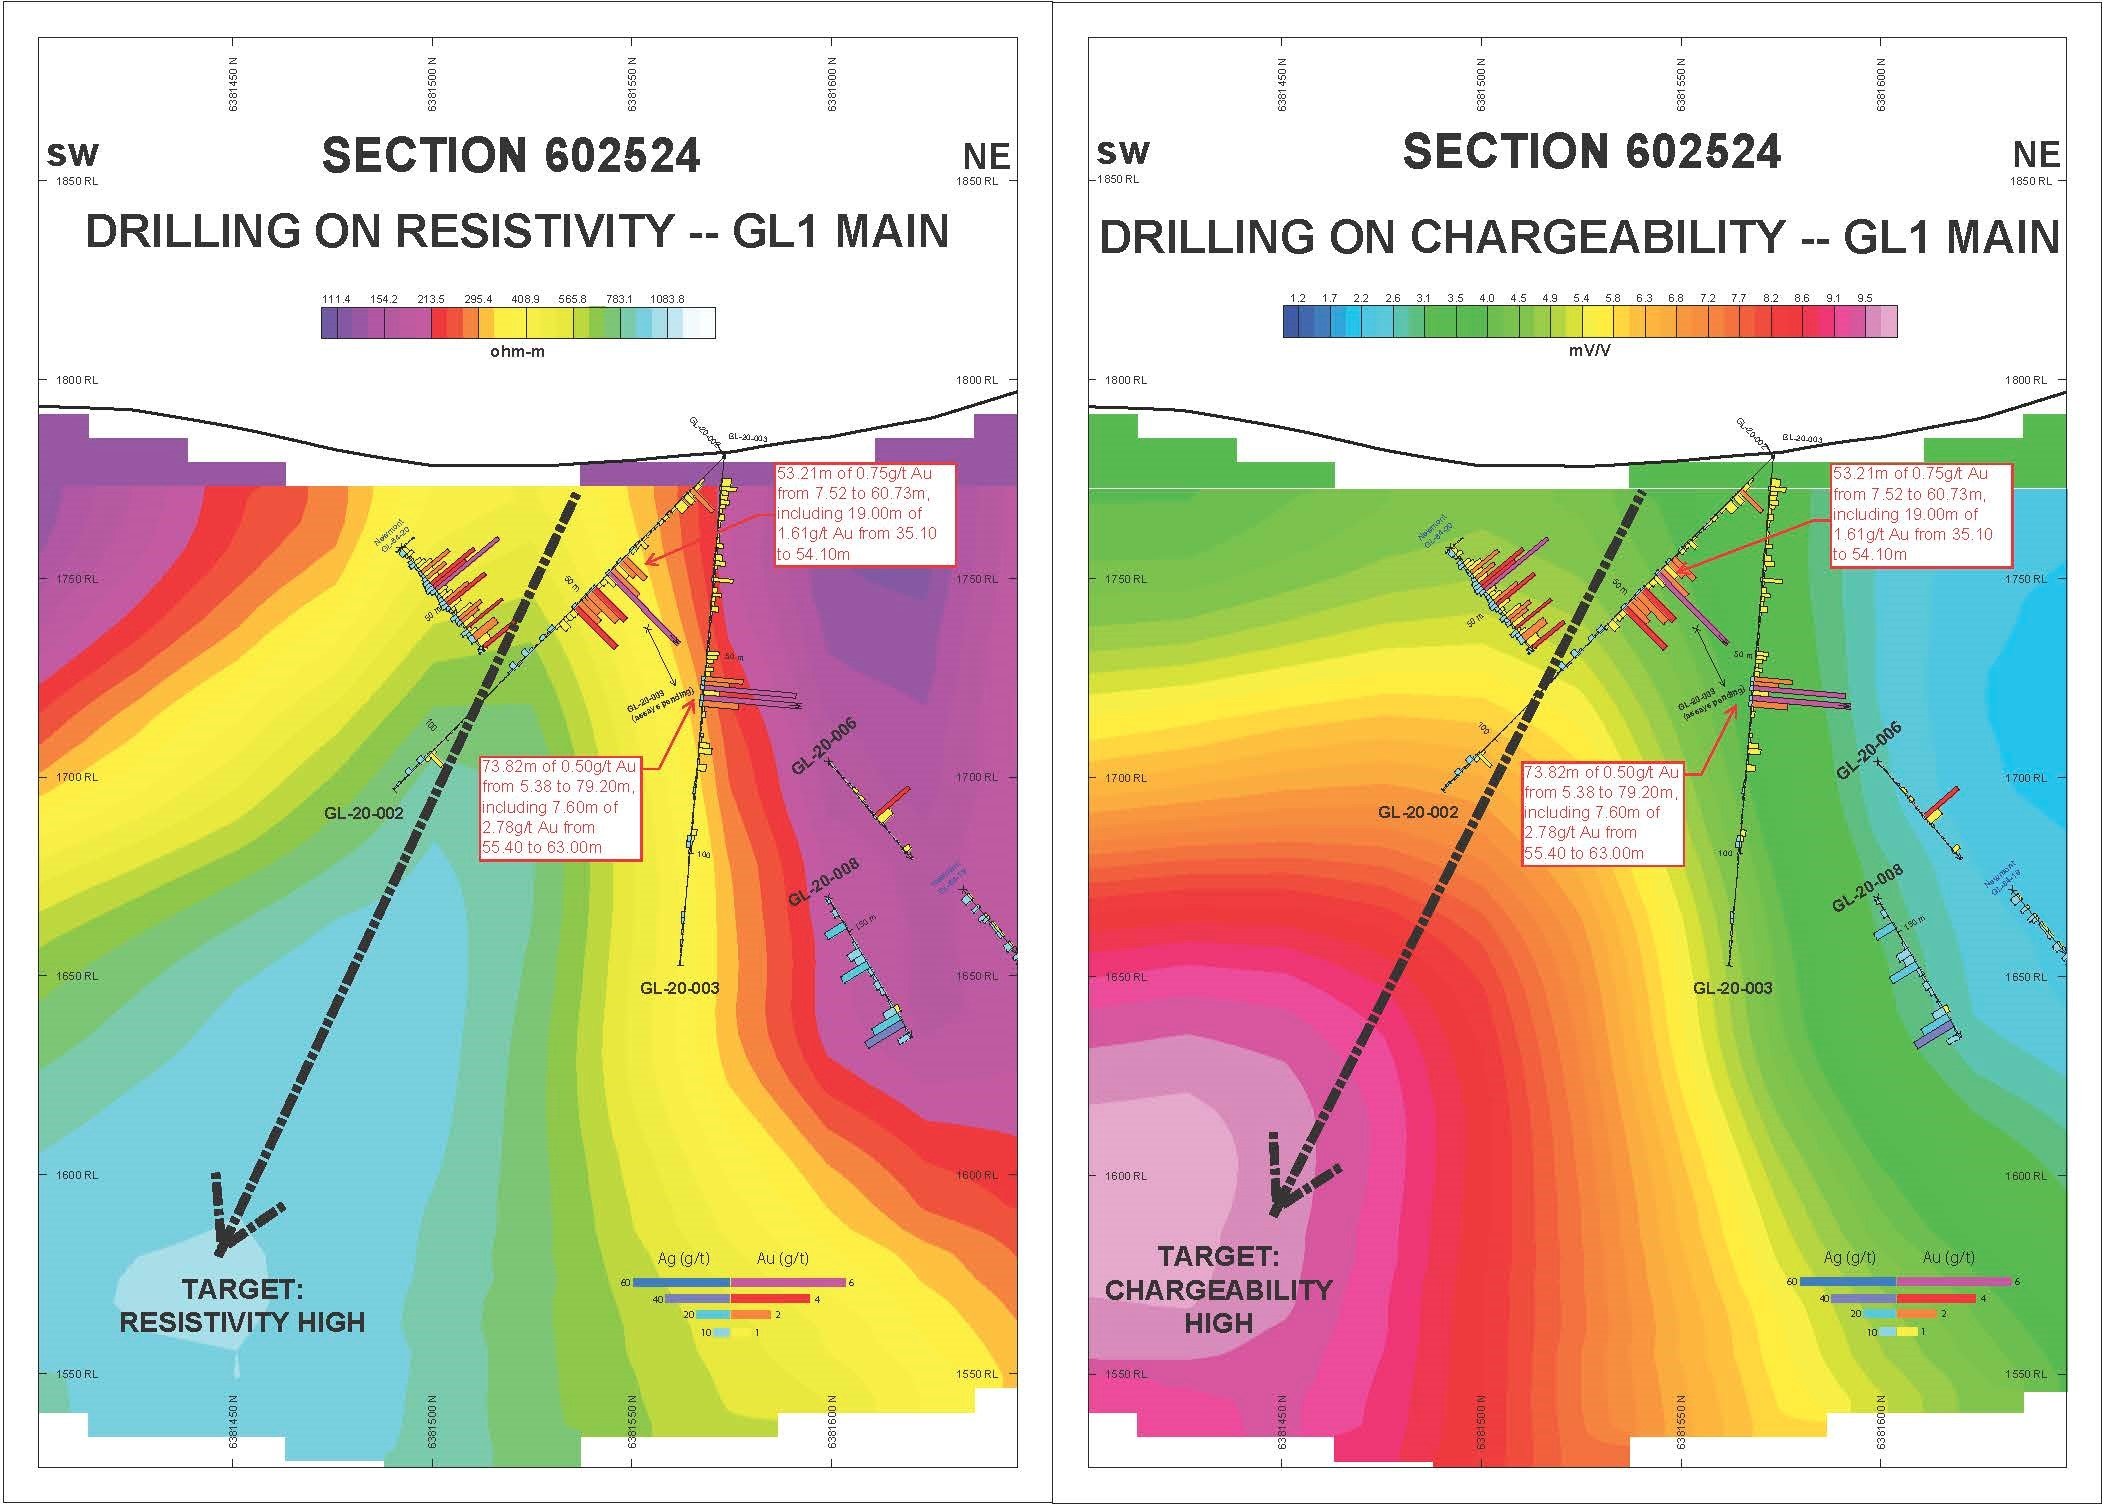 Section 602524, Drilling on Resistivity and Chargeability, GL1 Main Zone